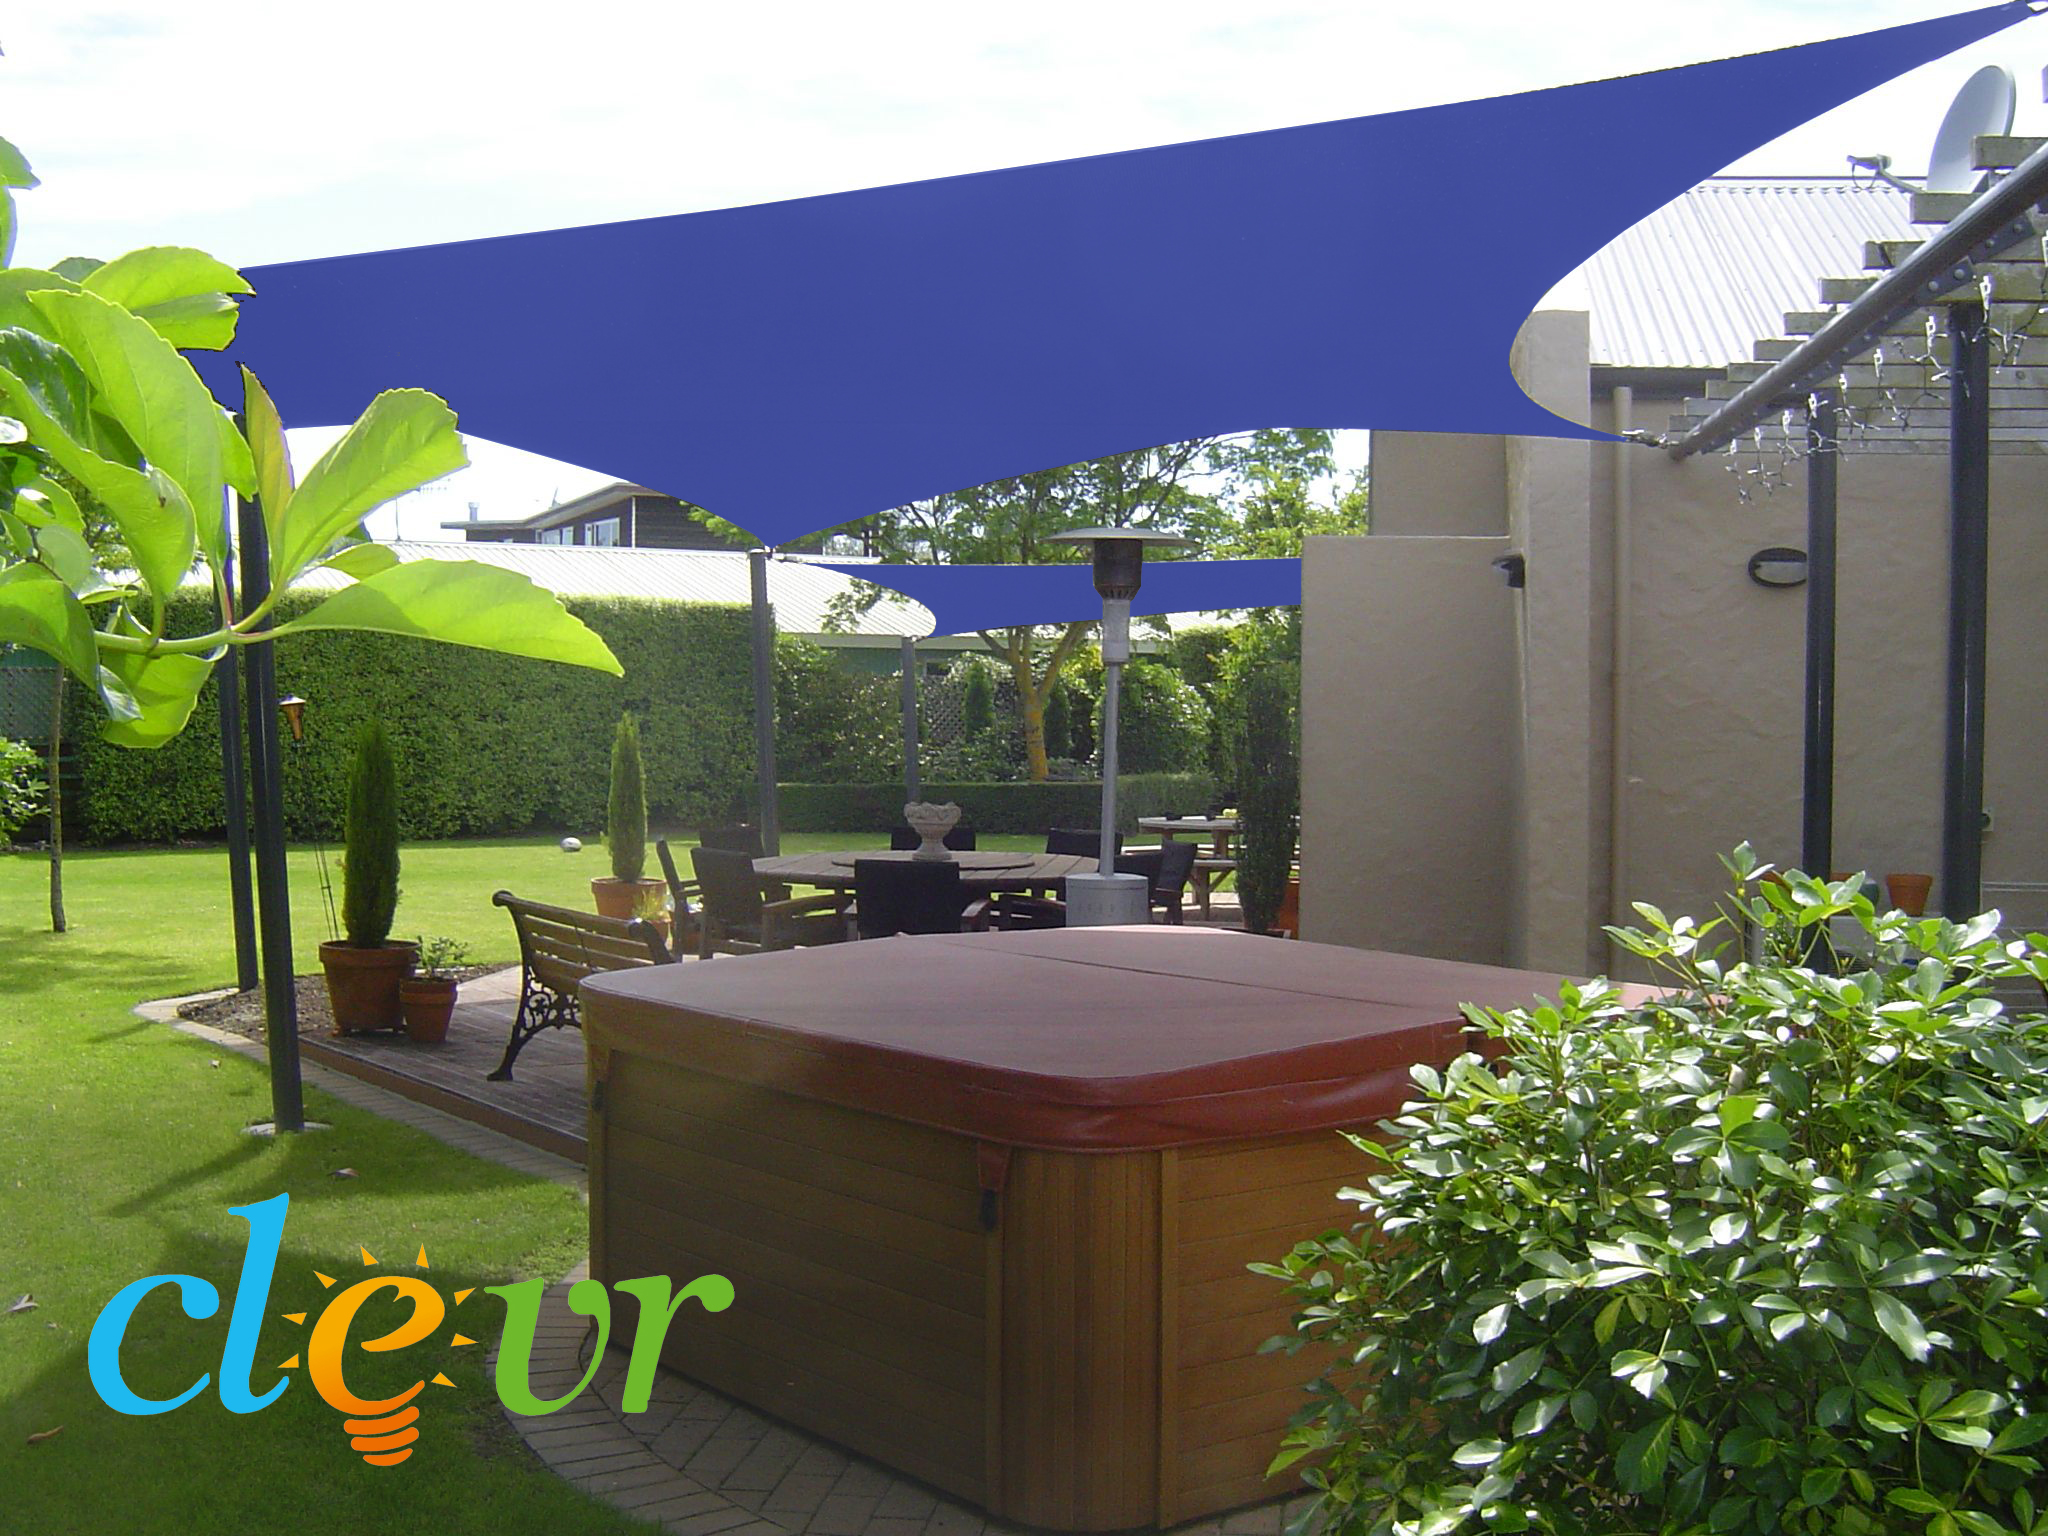 New-Premium-Clevr-Sun-Shade-Canopy-Sail-12- & New Premium Clevr Sun Shade Canopy Sail 12u0027 / 18u0027 Square UV ...